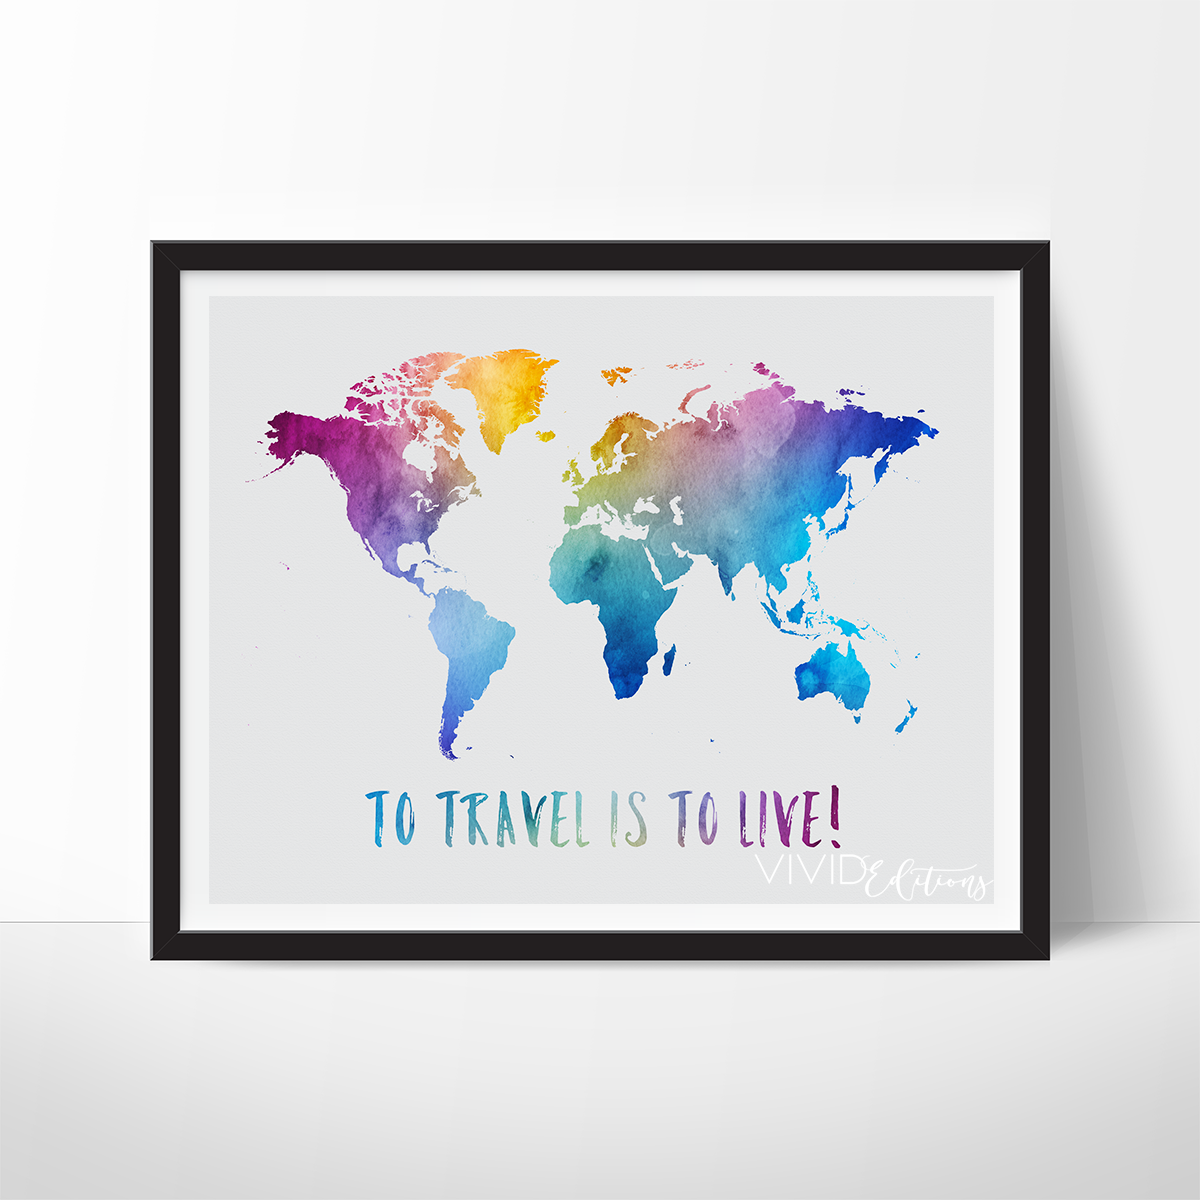 To travel is to live travel quote world map watercolor art print to travel is to live travel quote world map watercolor art print gumiabroncs Images